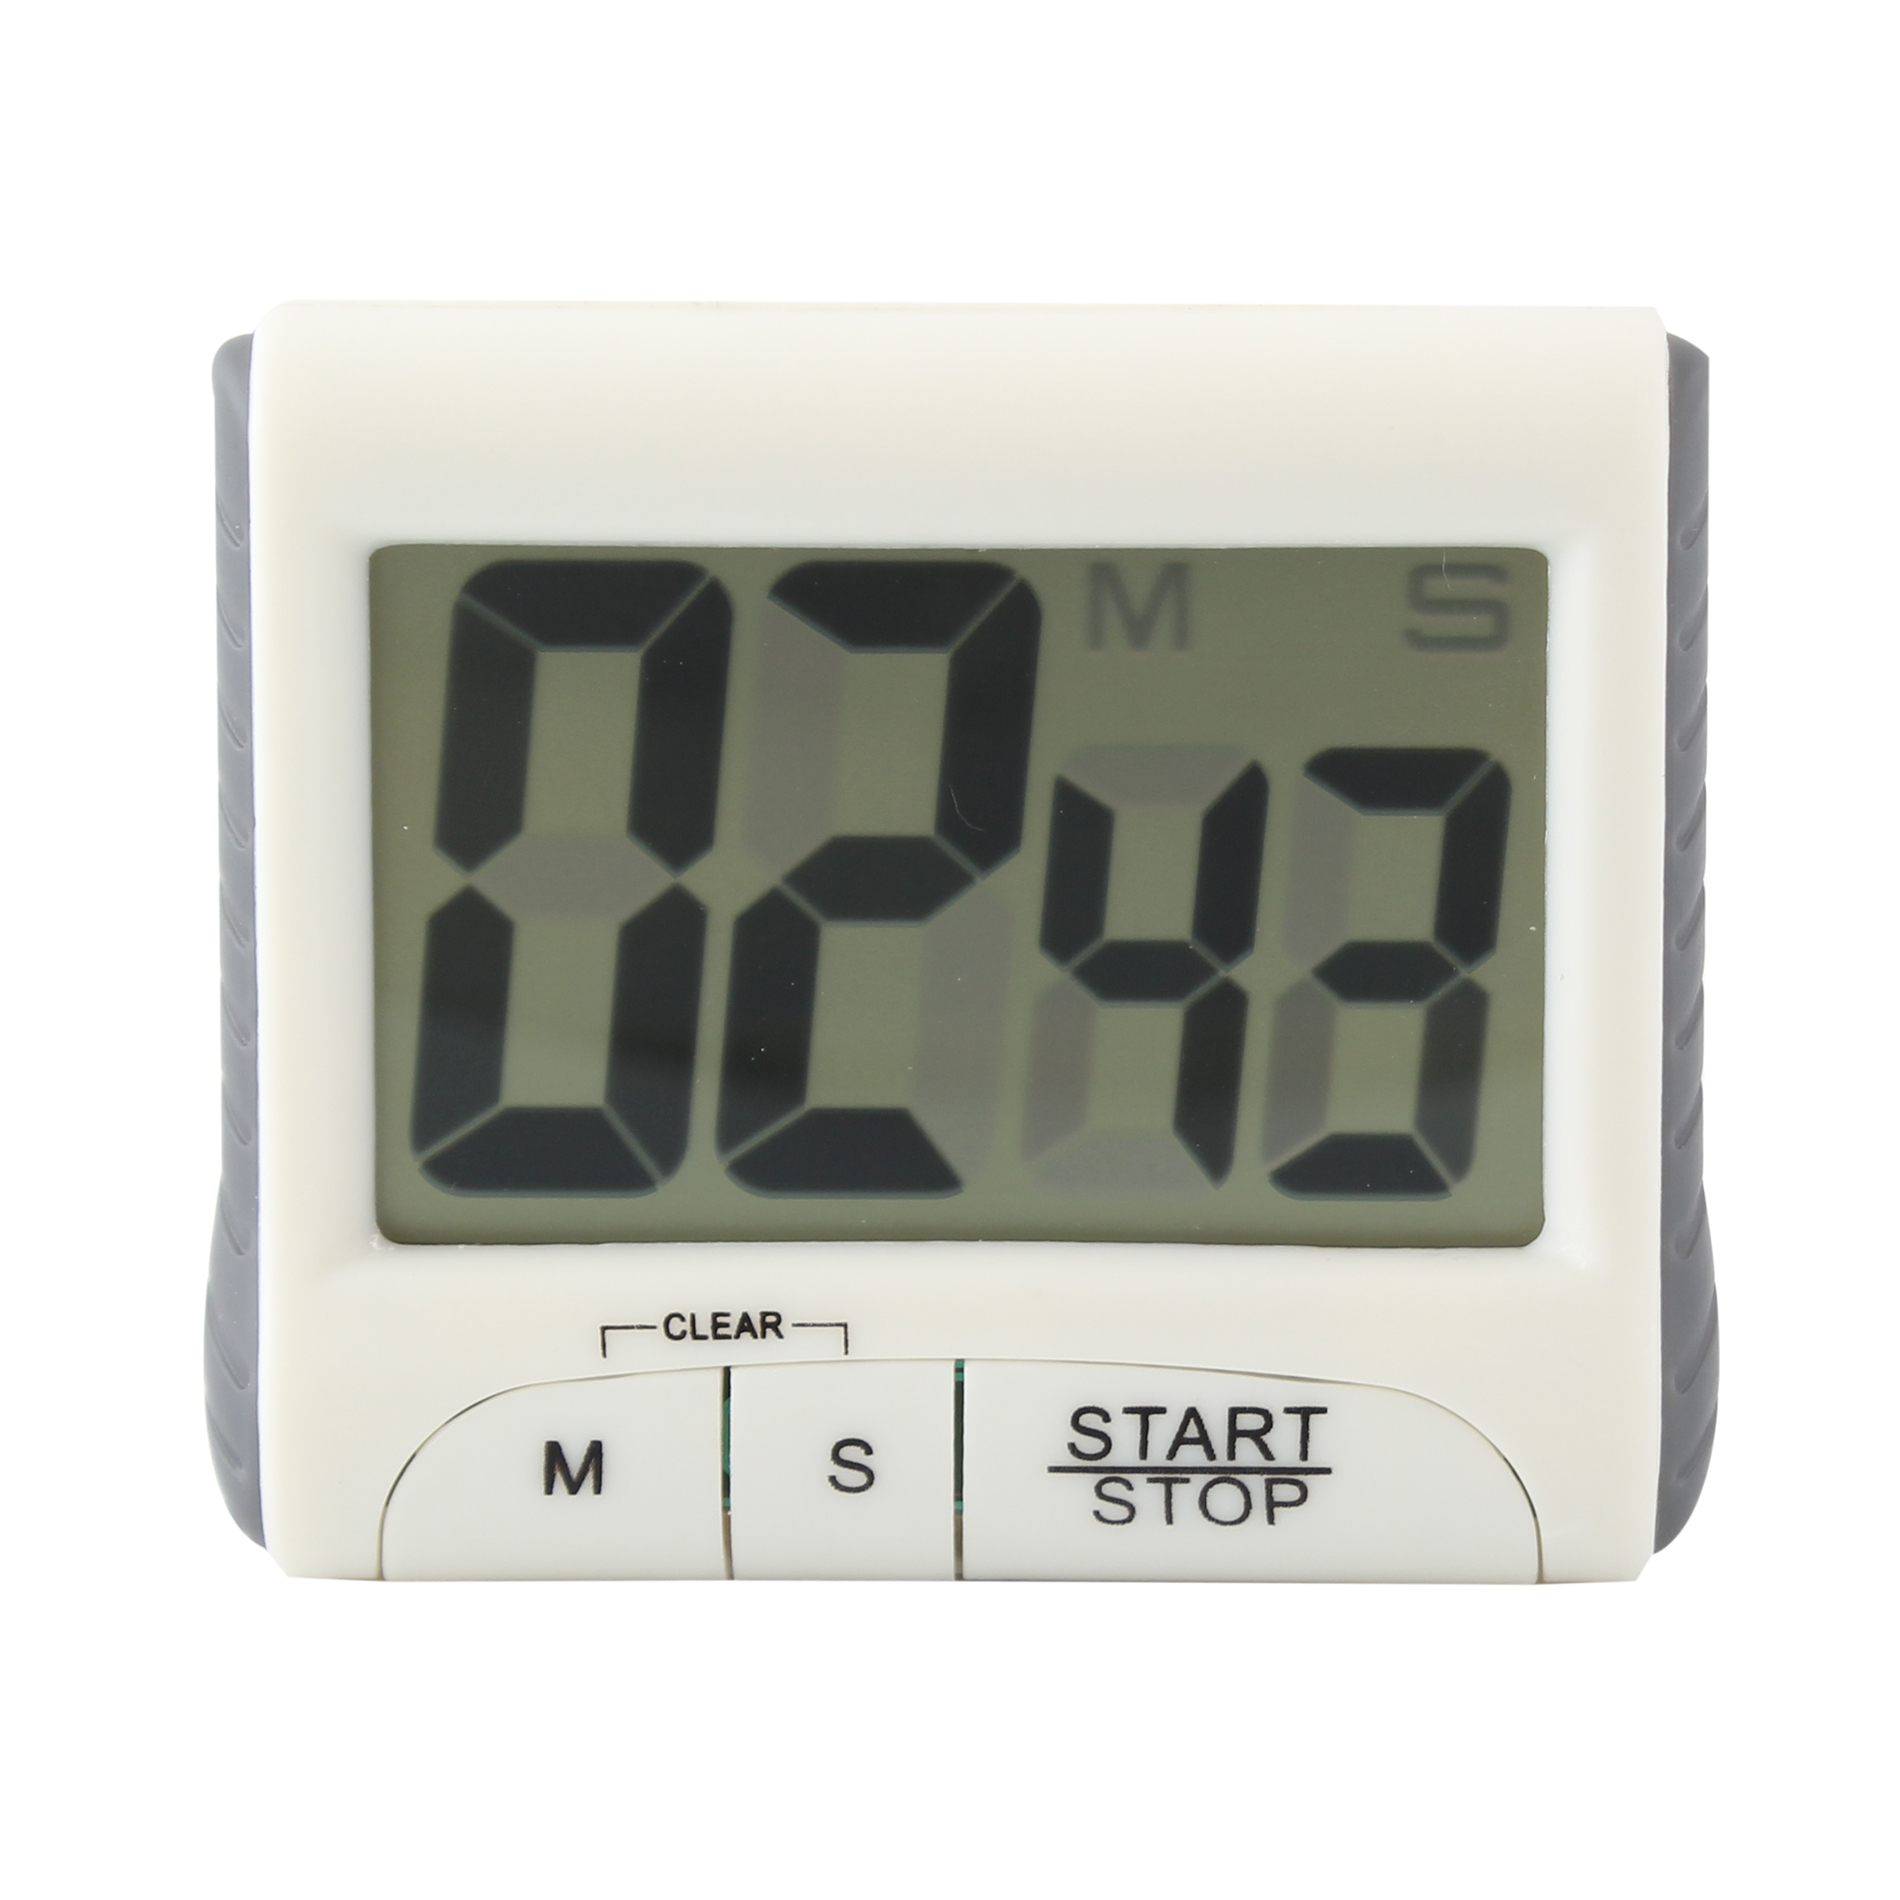 Digital Large LCD display Timer, Electronic Countdown Alarm Kitchen Timer, White